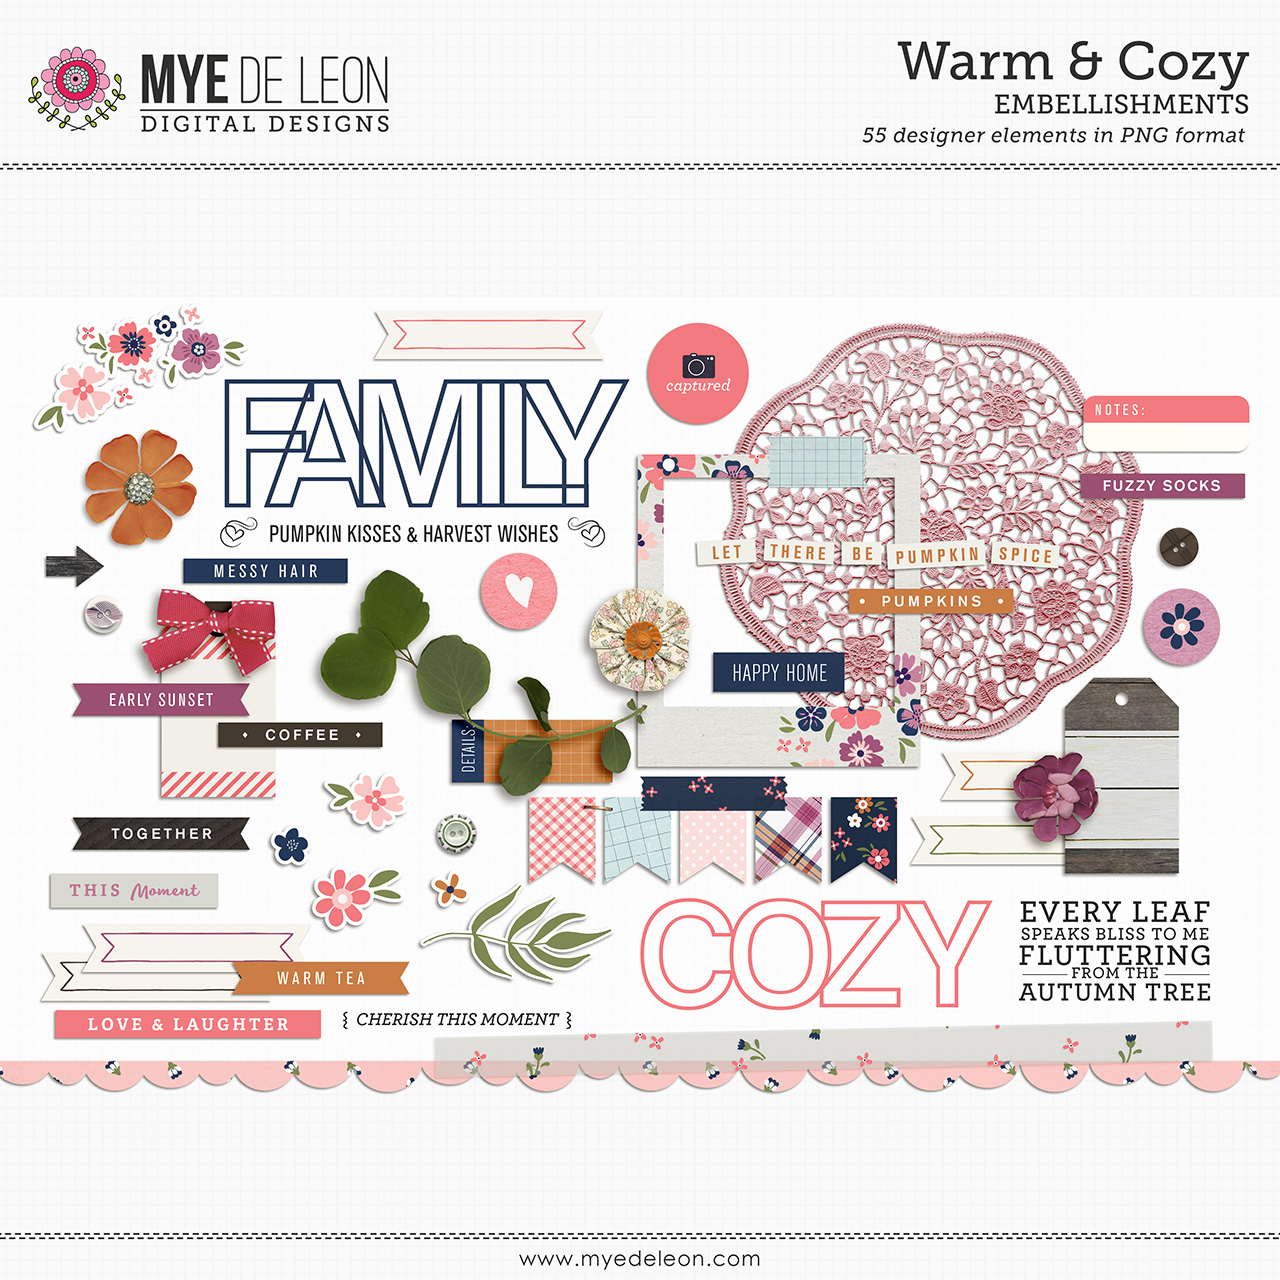 Warm & Cozy | Complete Kit